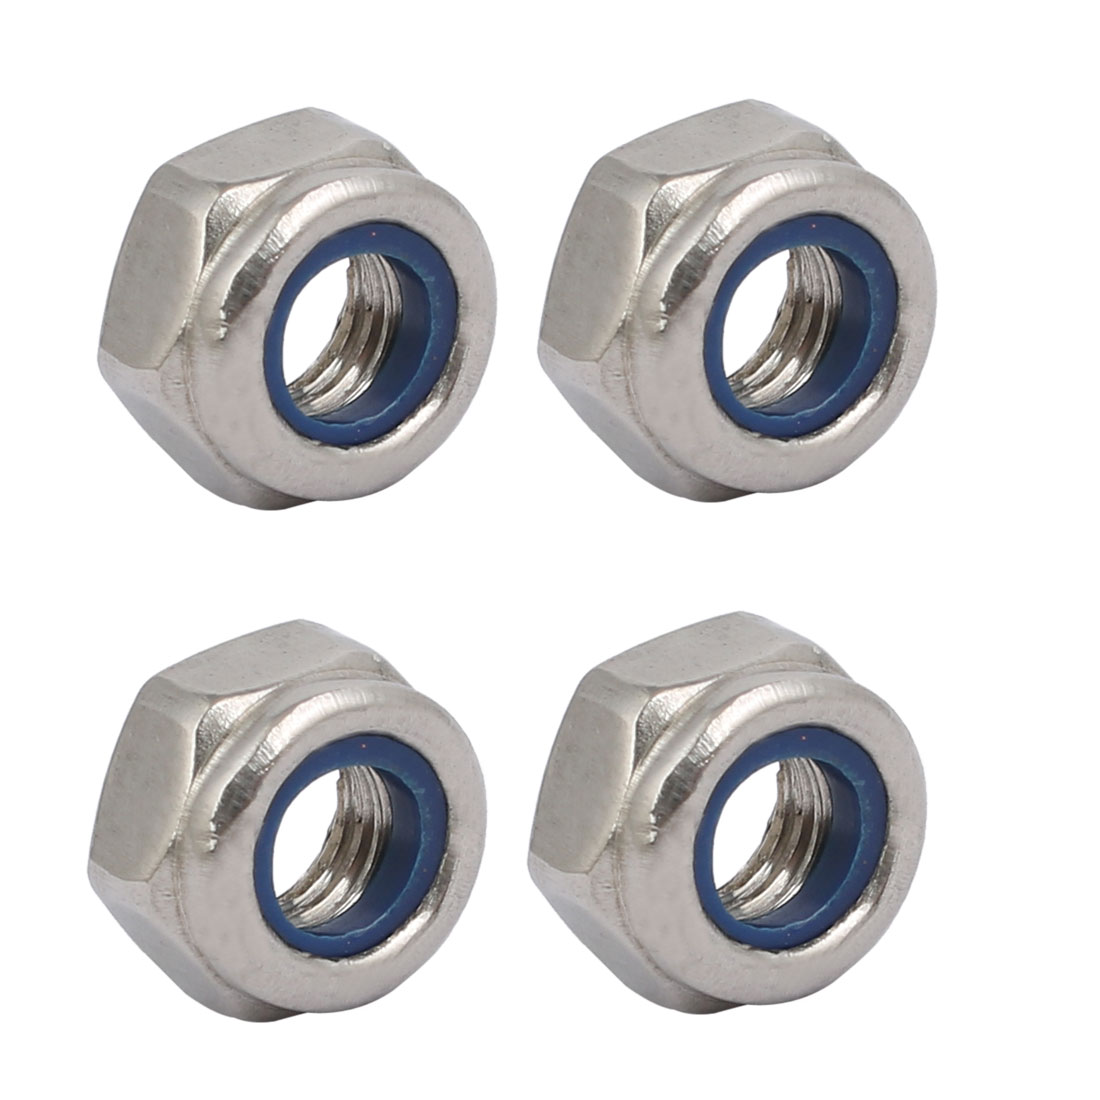 4pcs M6 x 1mm Pitch Metric Thread 304 Stainless Steel Left Hand Lock Nuts